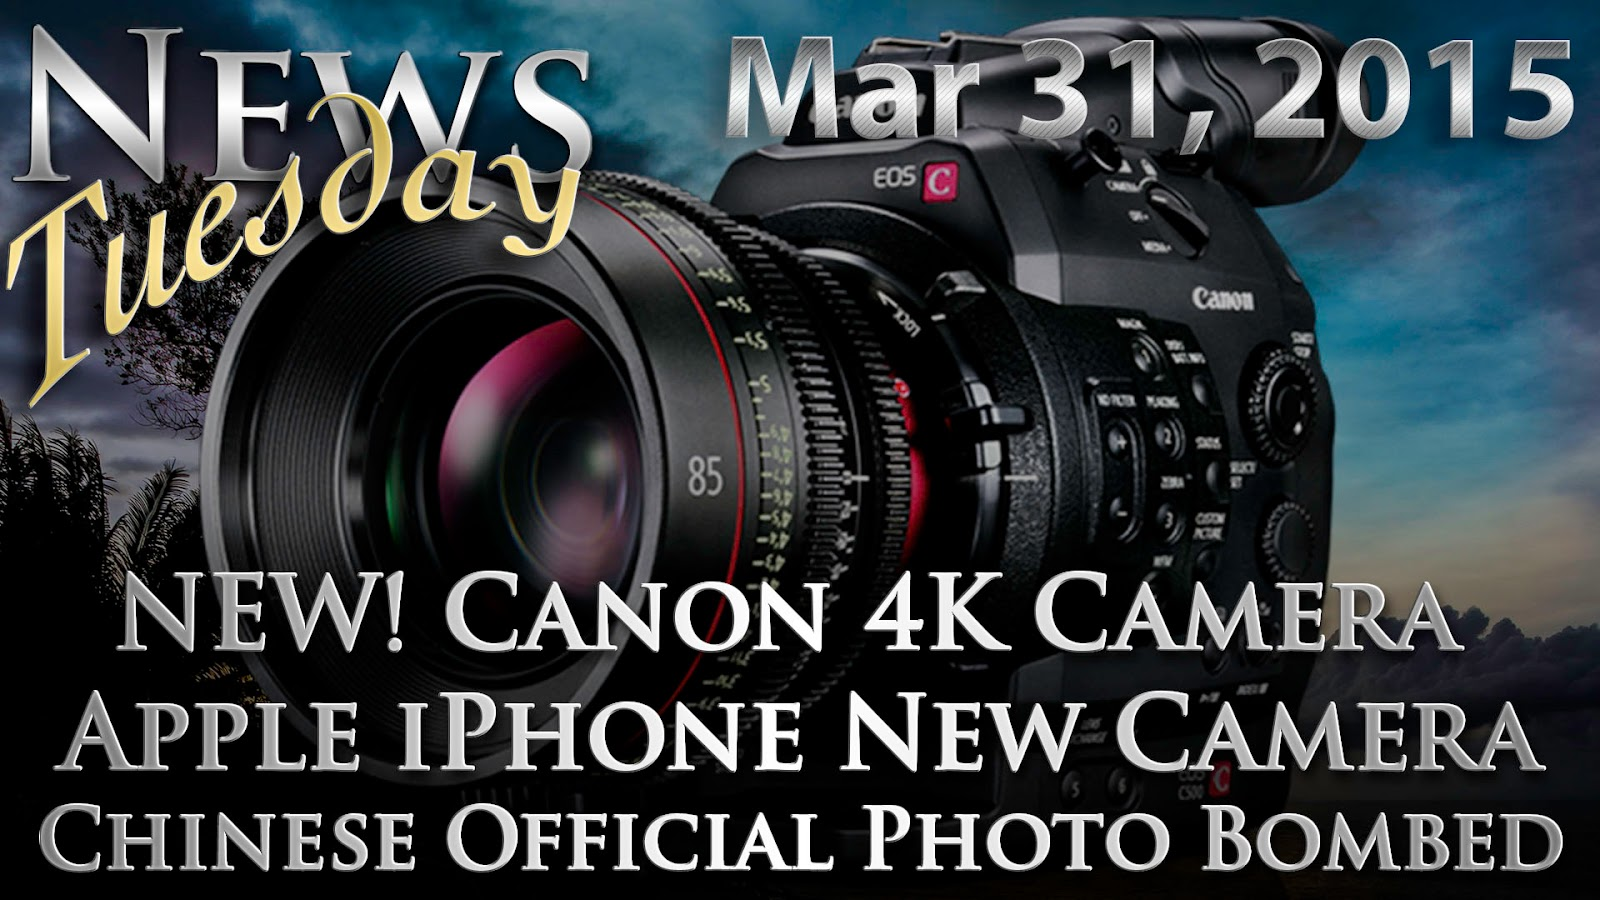 New Camera In Next iPhone, Canon 4K Camera & Chinese Official Busted For Photography | News Tuesday